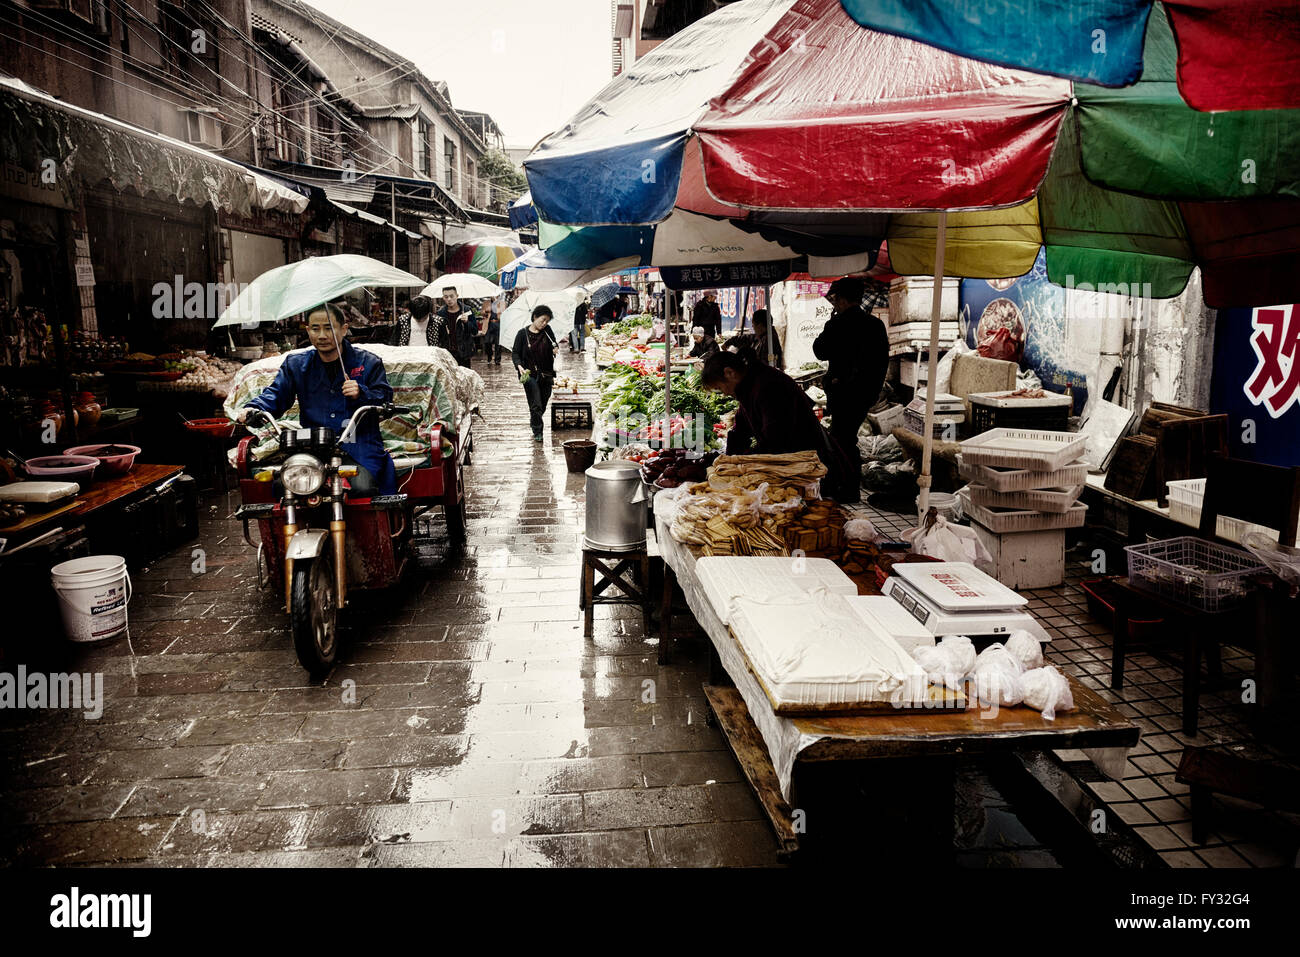 Street food market during rain, Zhangjiajie, Hunan, China - Stock Image